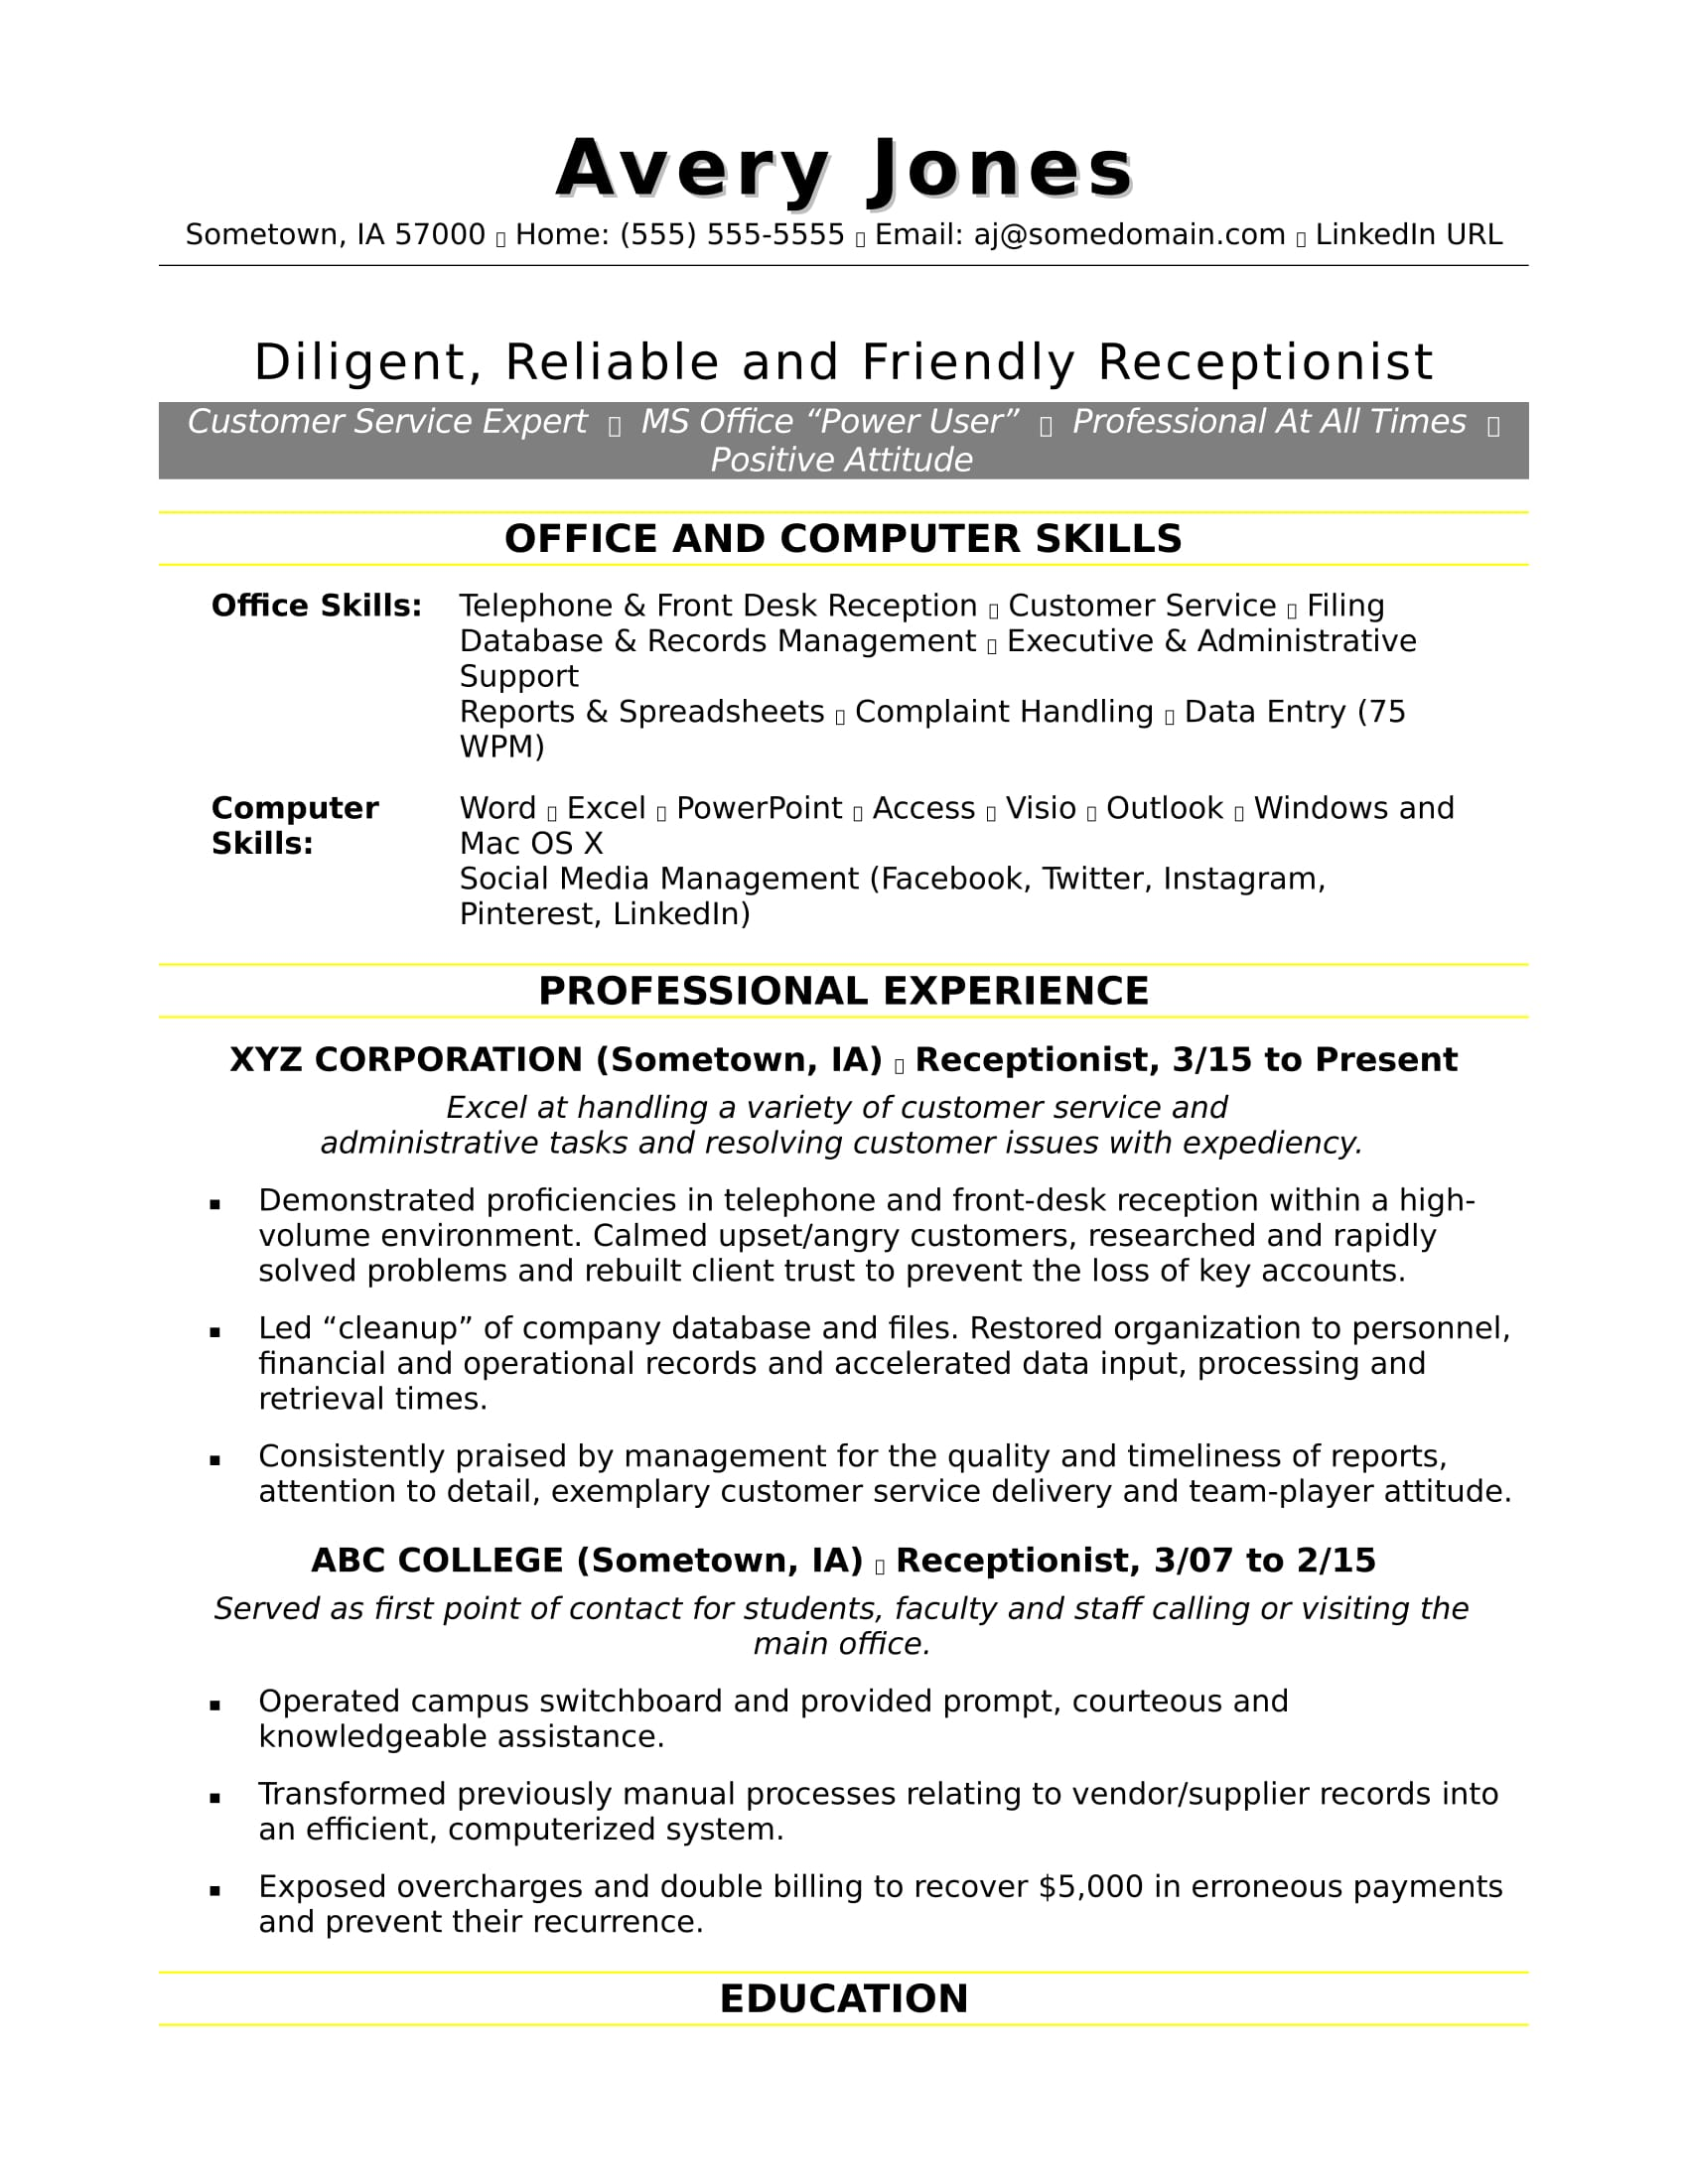 receptionist resume sample monster good first examples college grad format software Resume Good First Resume Examples